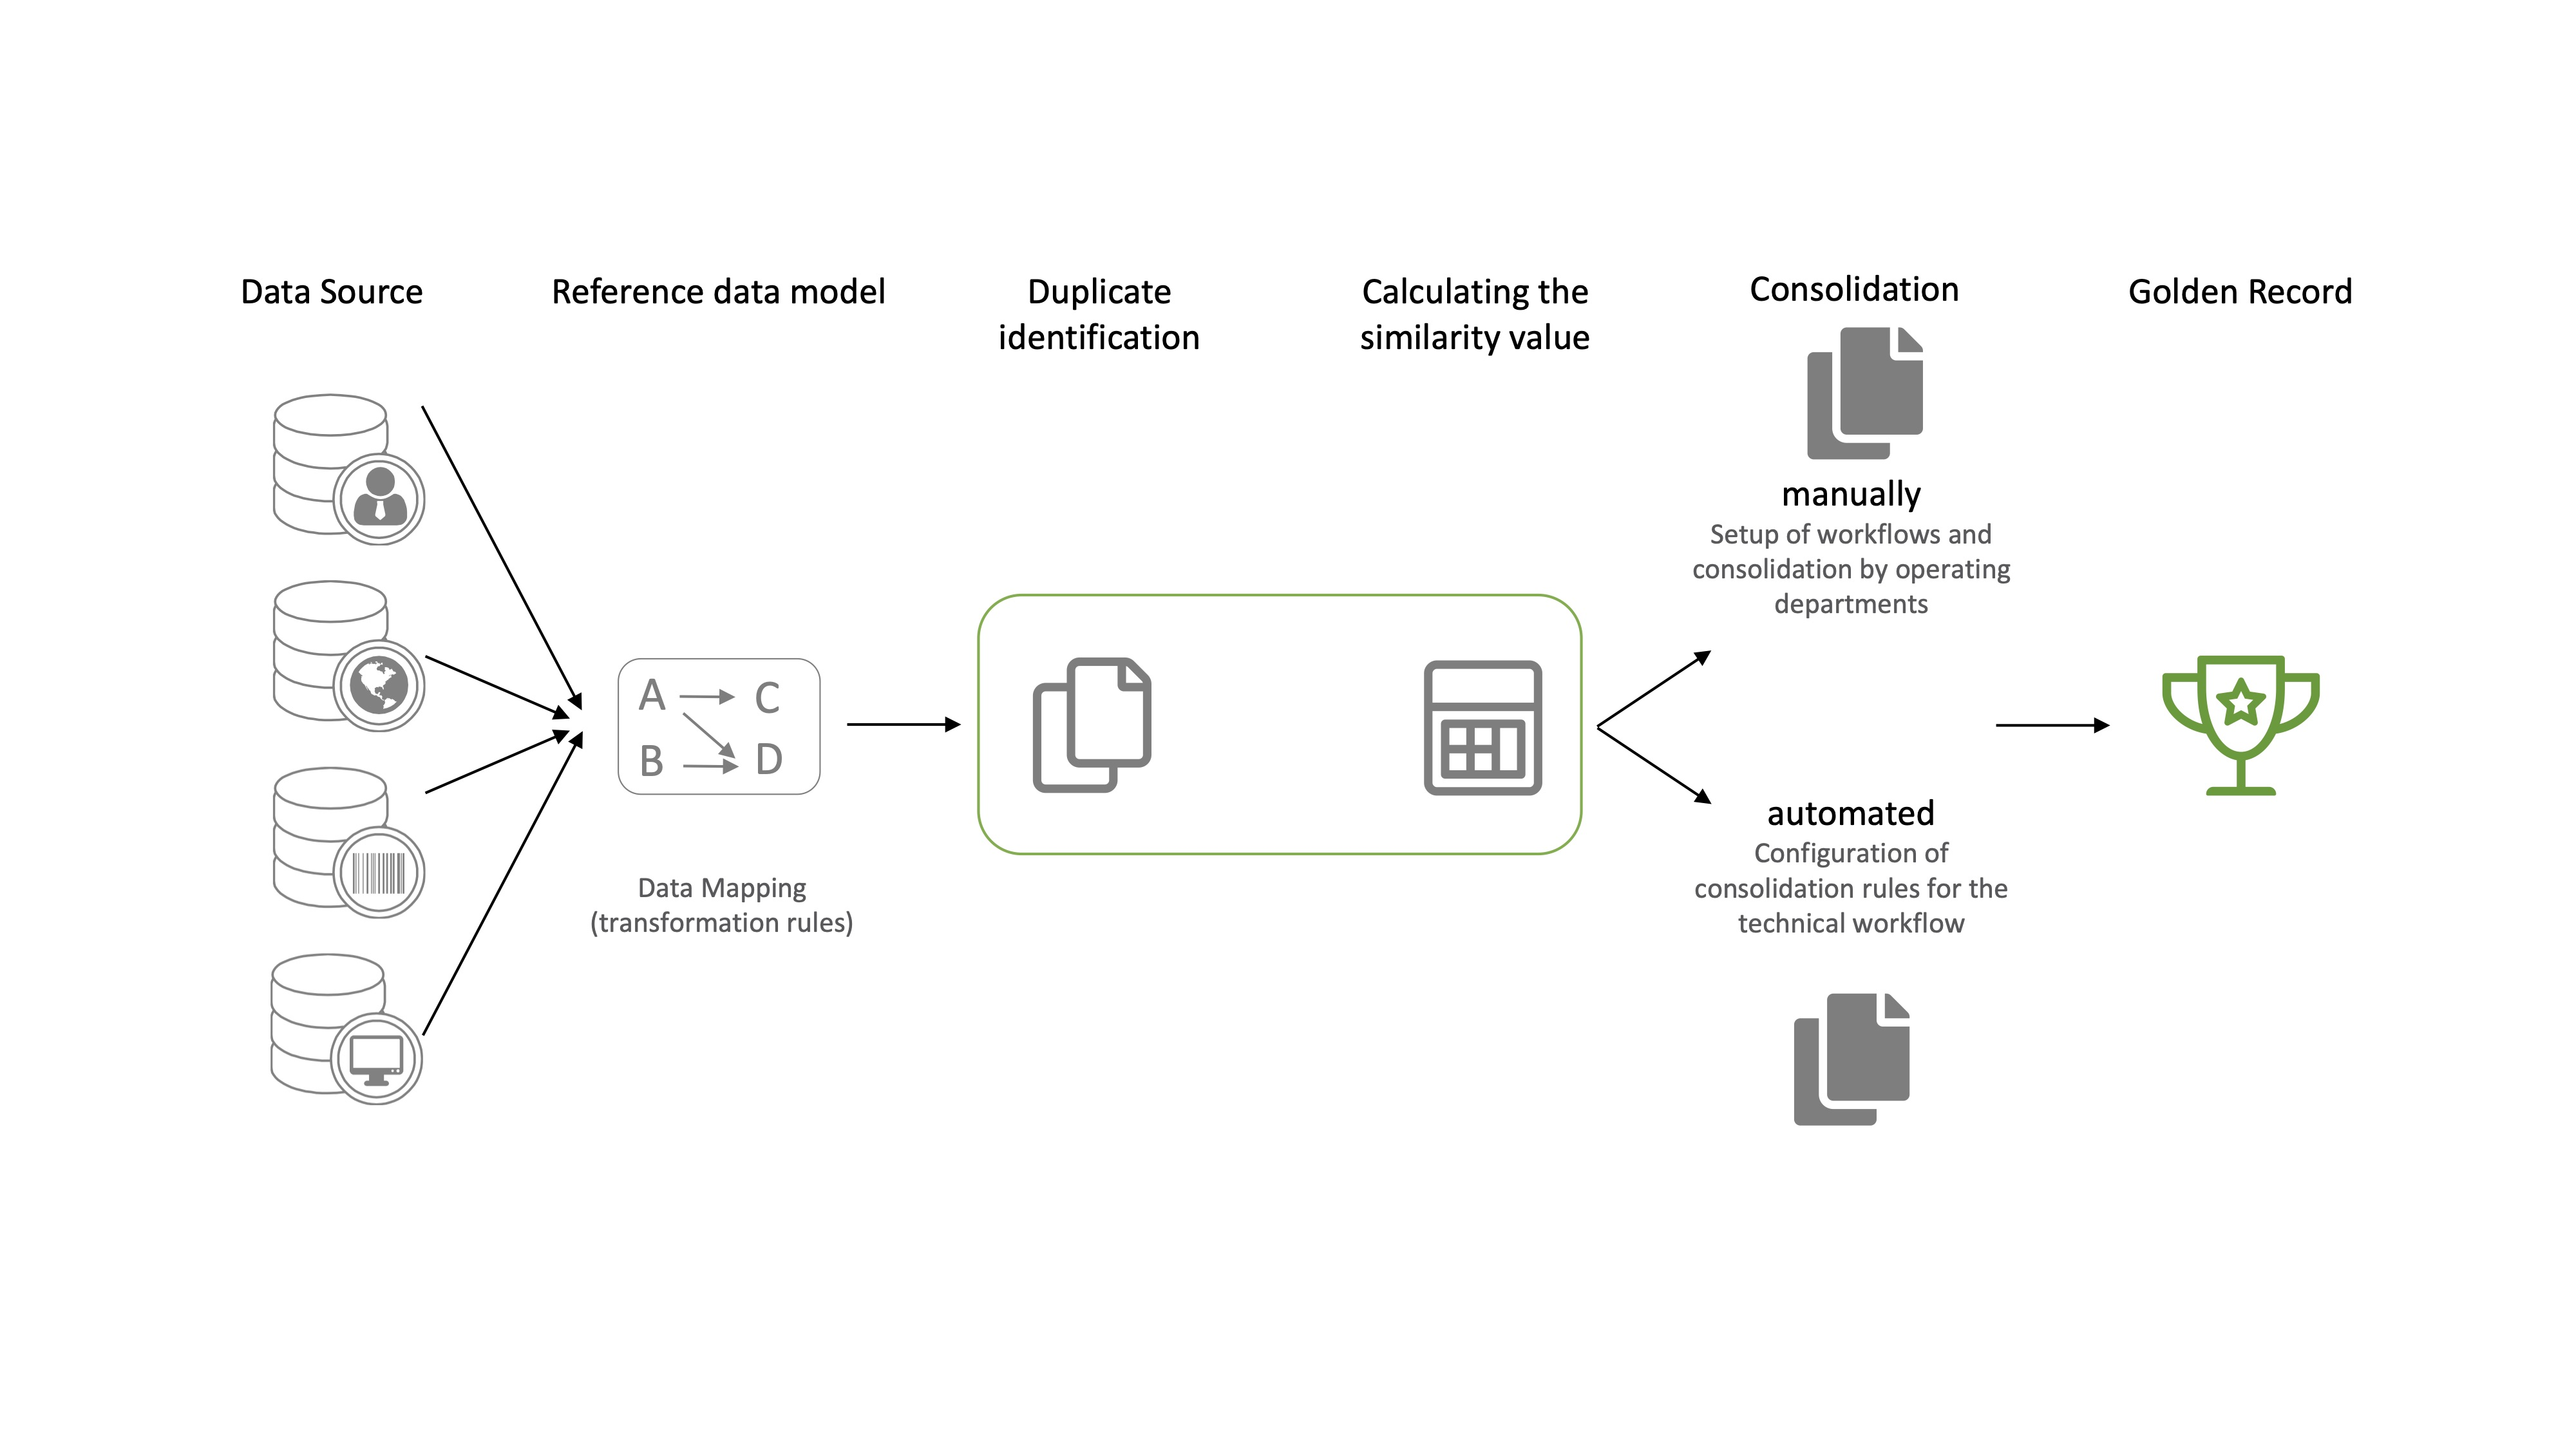 data consolidation using DataRocket and its workflows